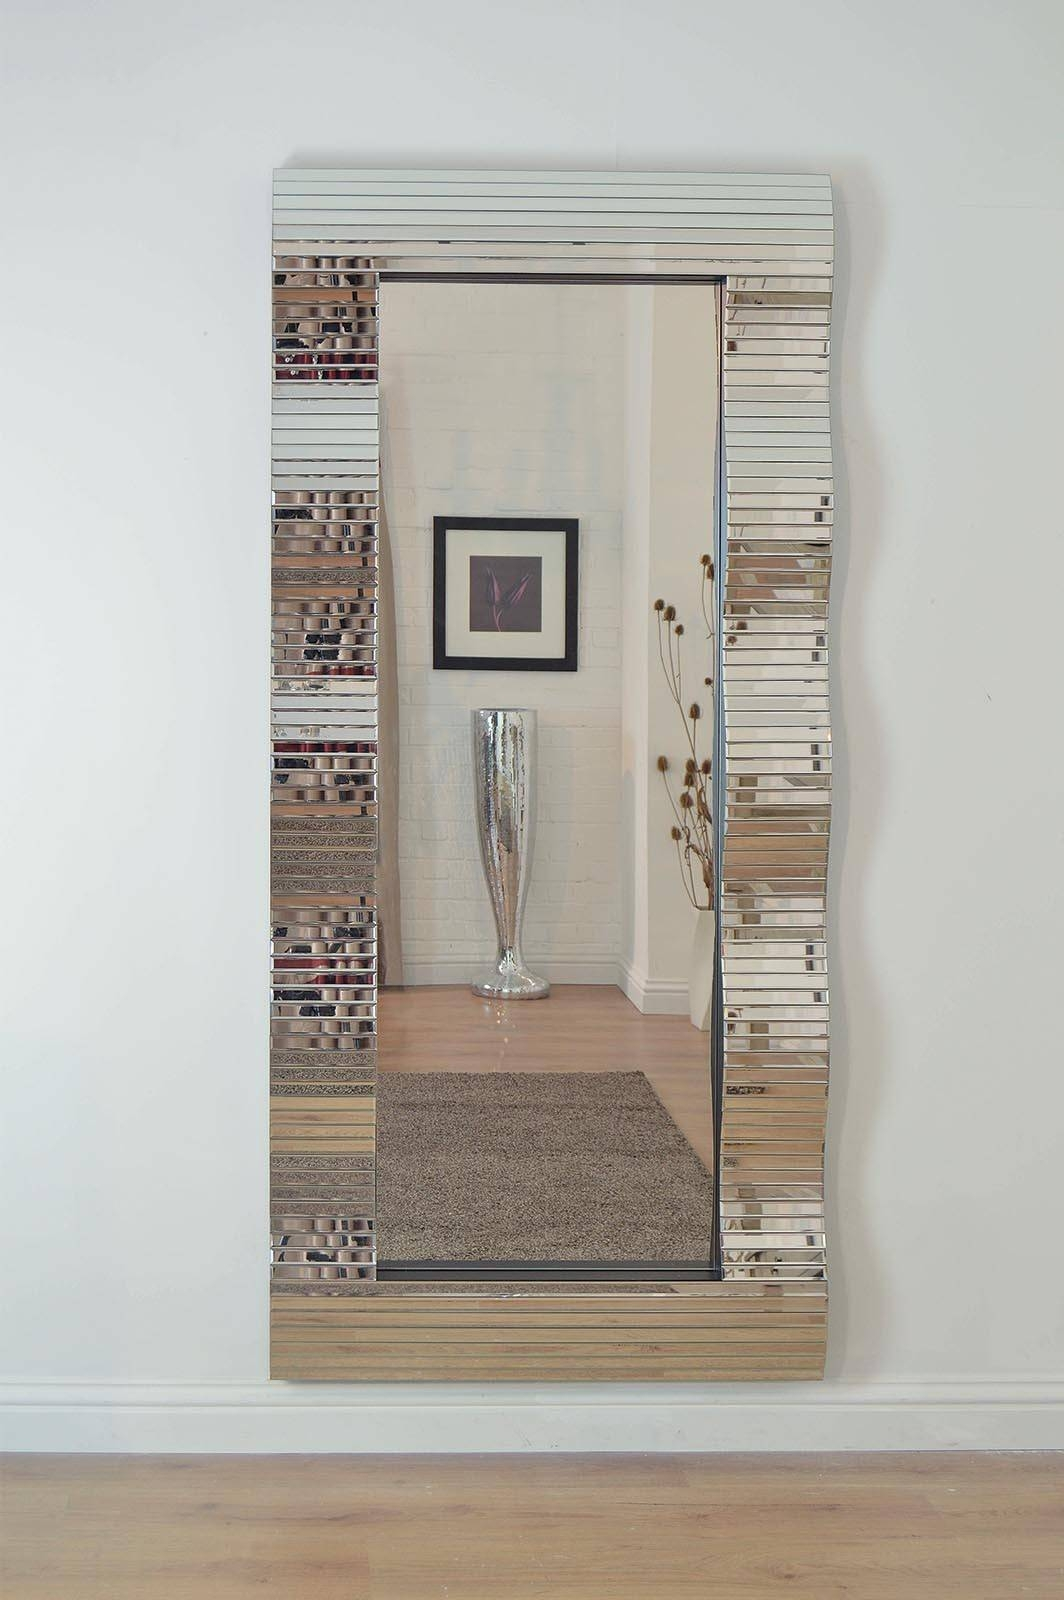 Frameless Full Length Wall Mirror 26 Breathtaking Decor Plus throughout Frameless Large Wall Mirrors (Image 4 of 25)